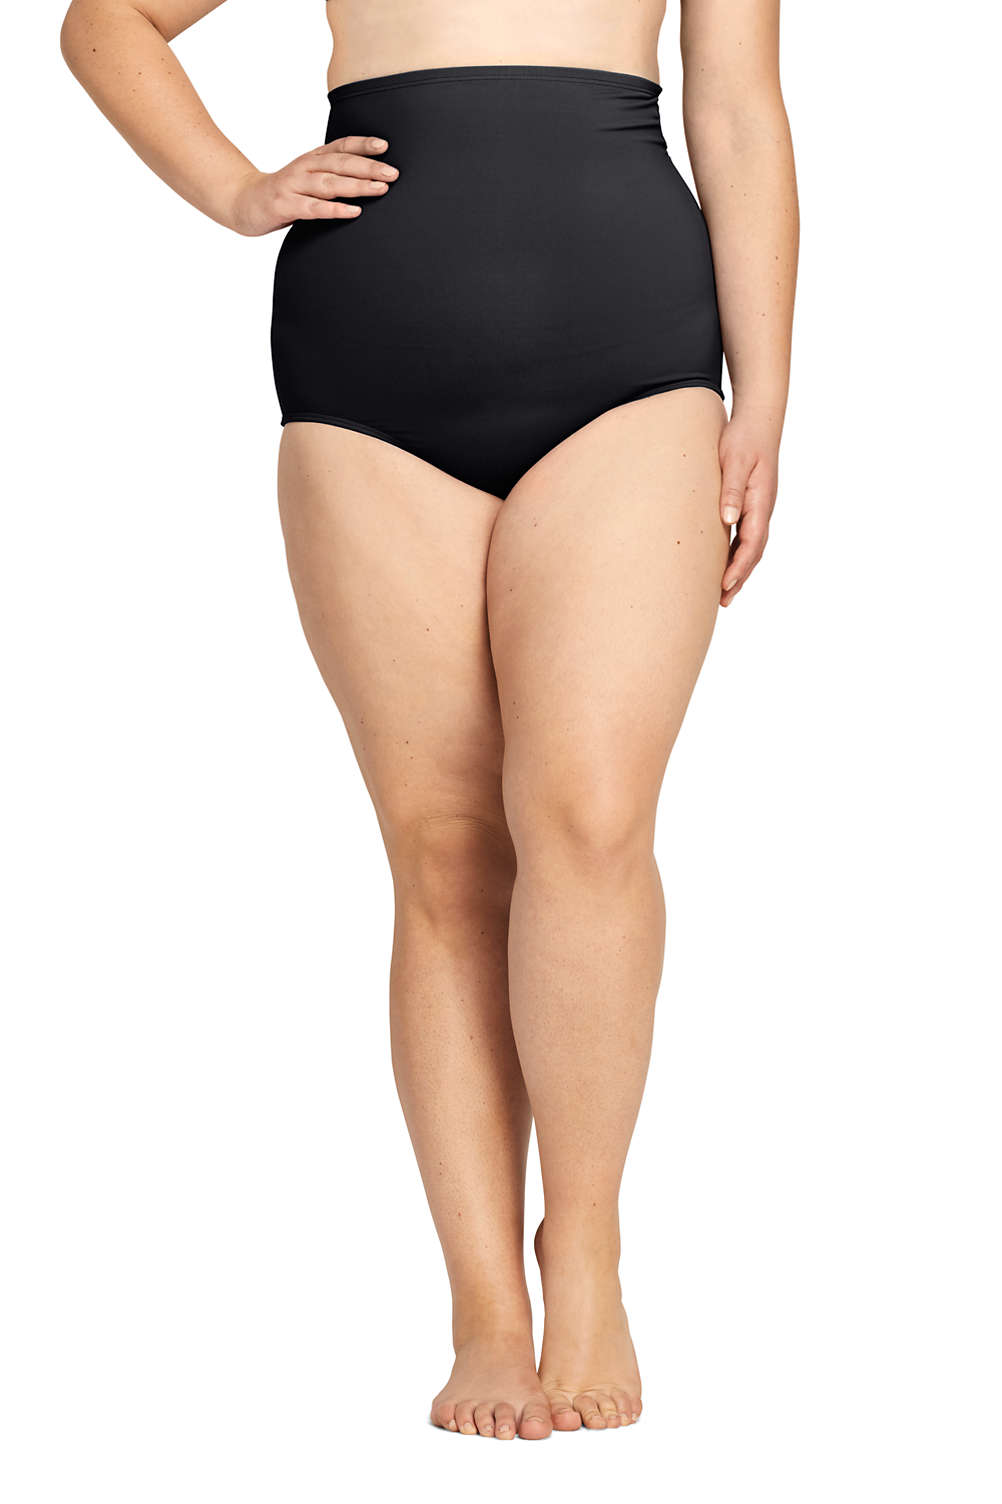 577b2e25c14 Women's Plus Size Ultra High Waisted Tummy Control Bikini Bottoms from  Lands' End